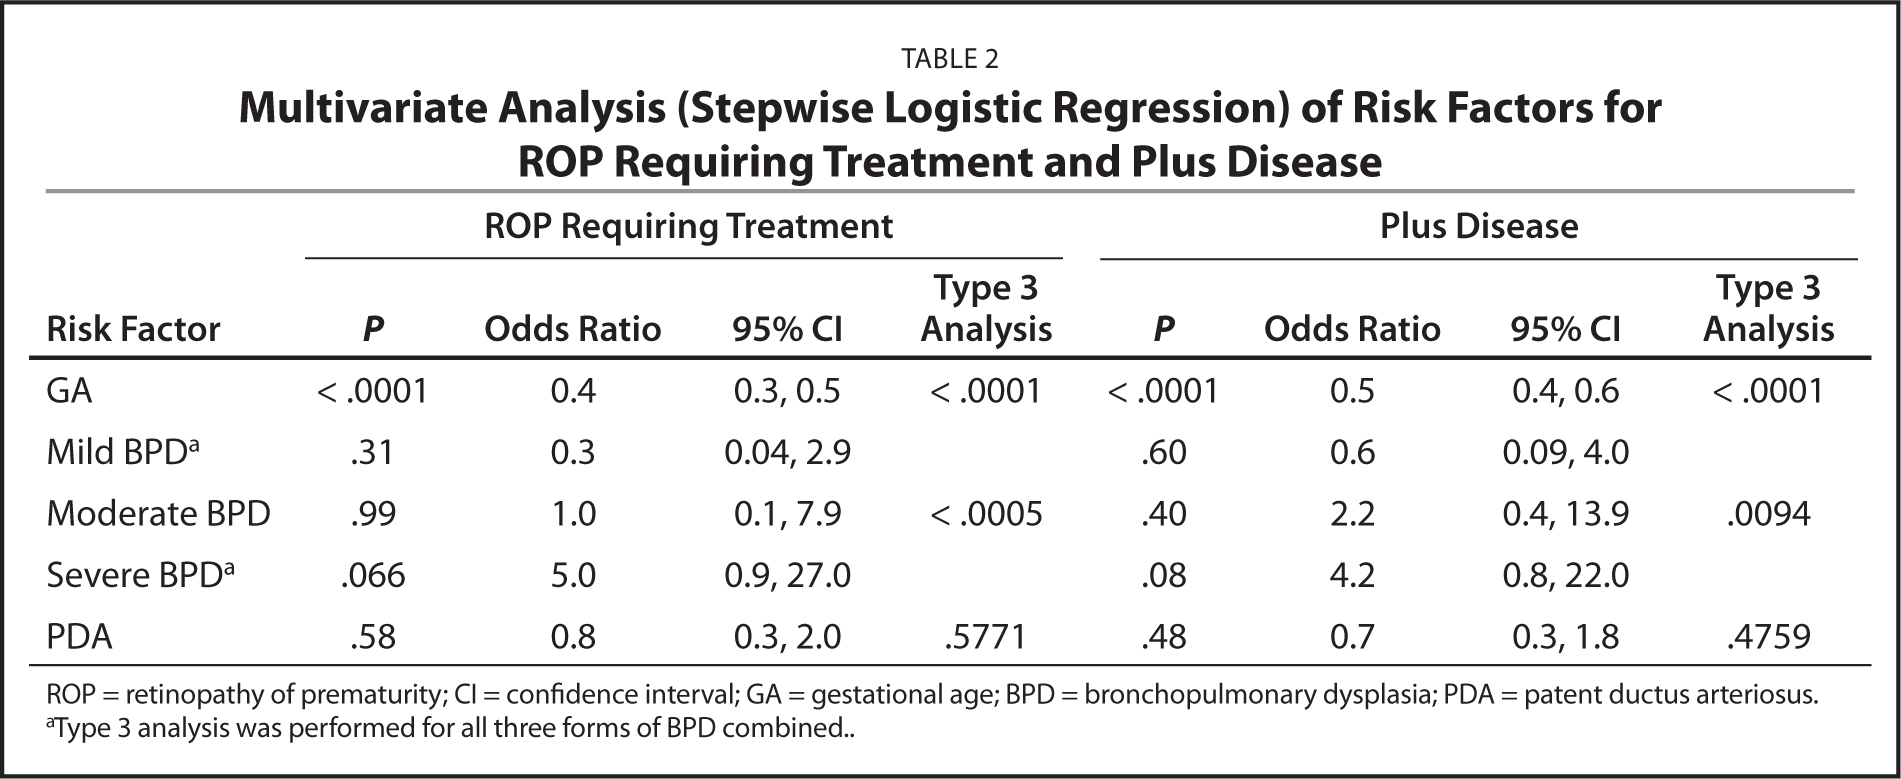 Multivariate Analysis (Stepwise Logistic Regression) of Risk Factors for ROP Requiring Treatment and Plus Disease